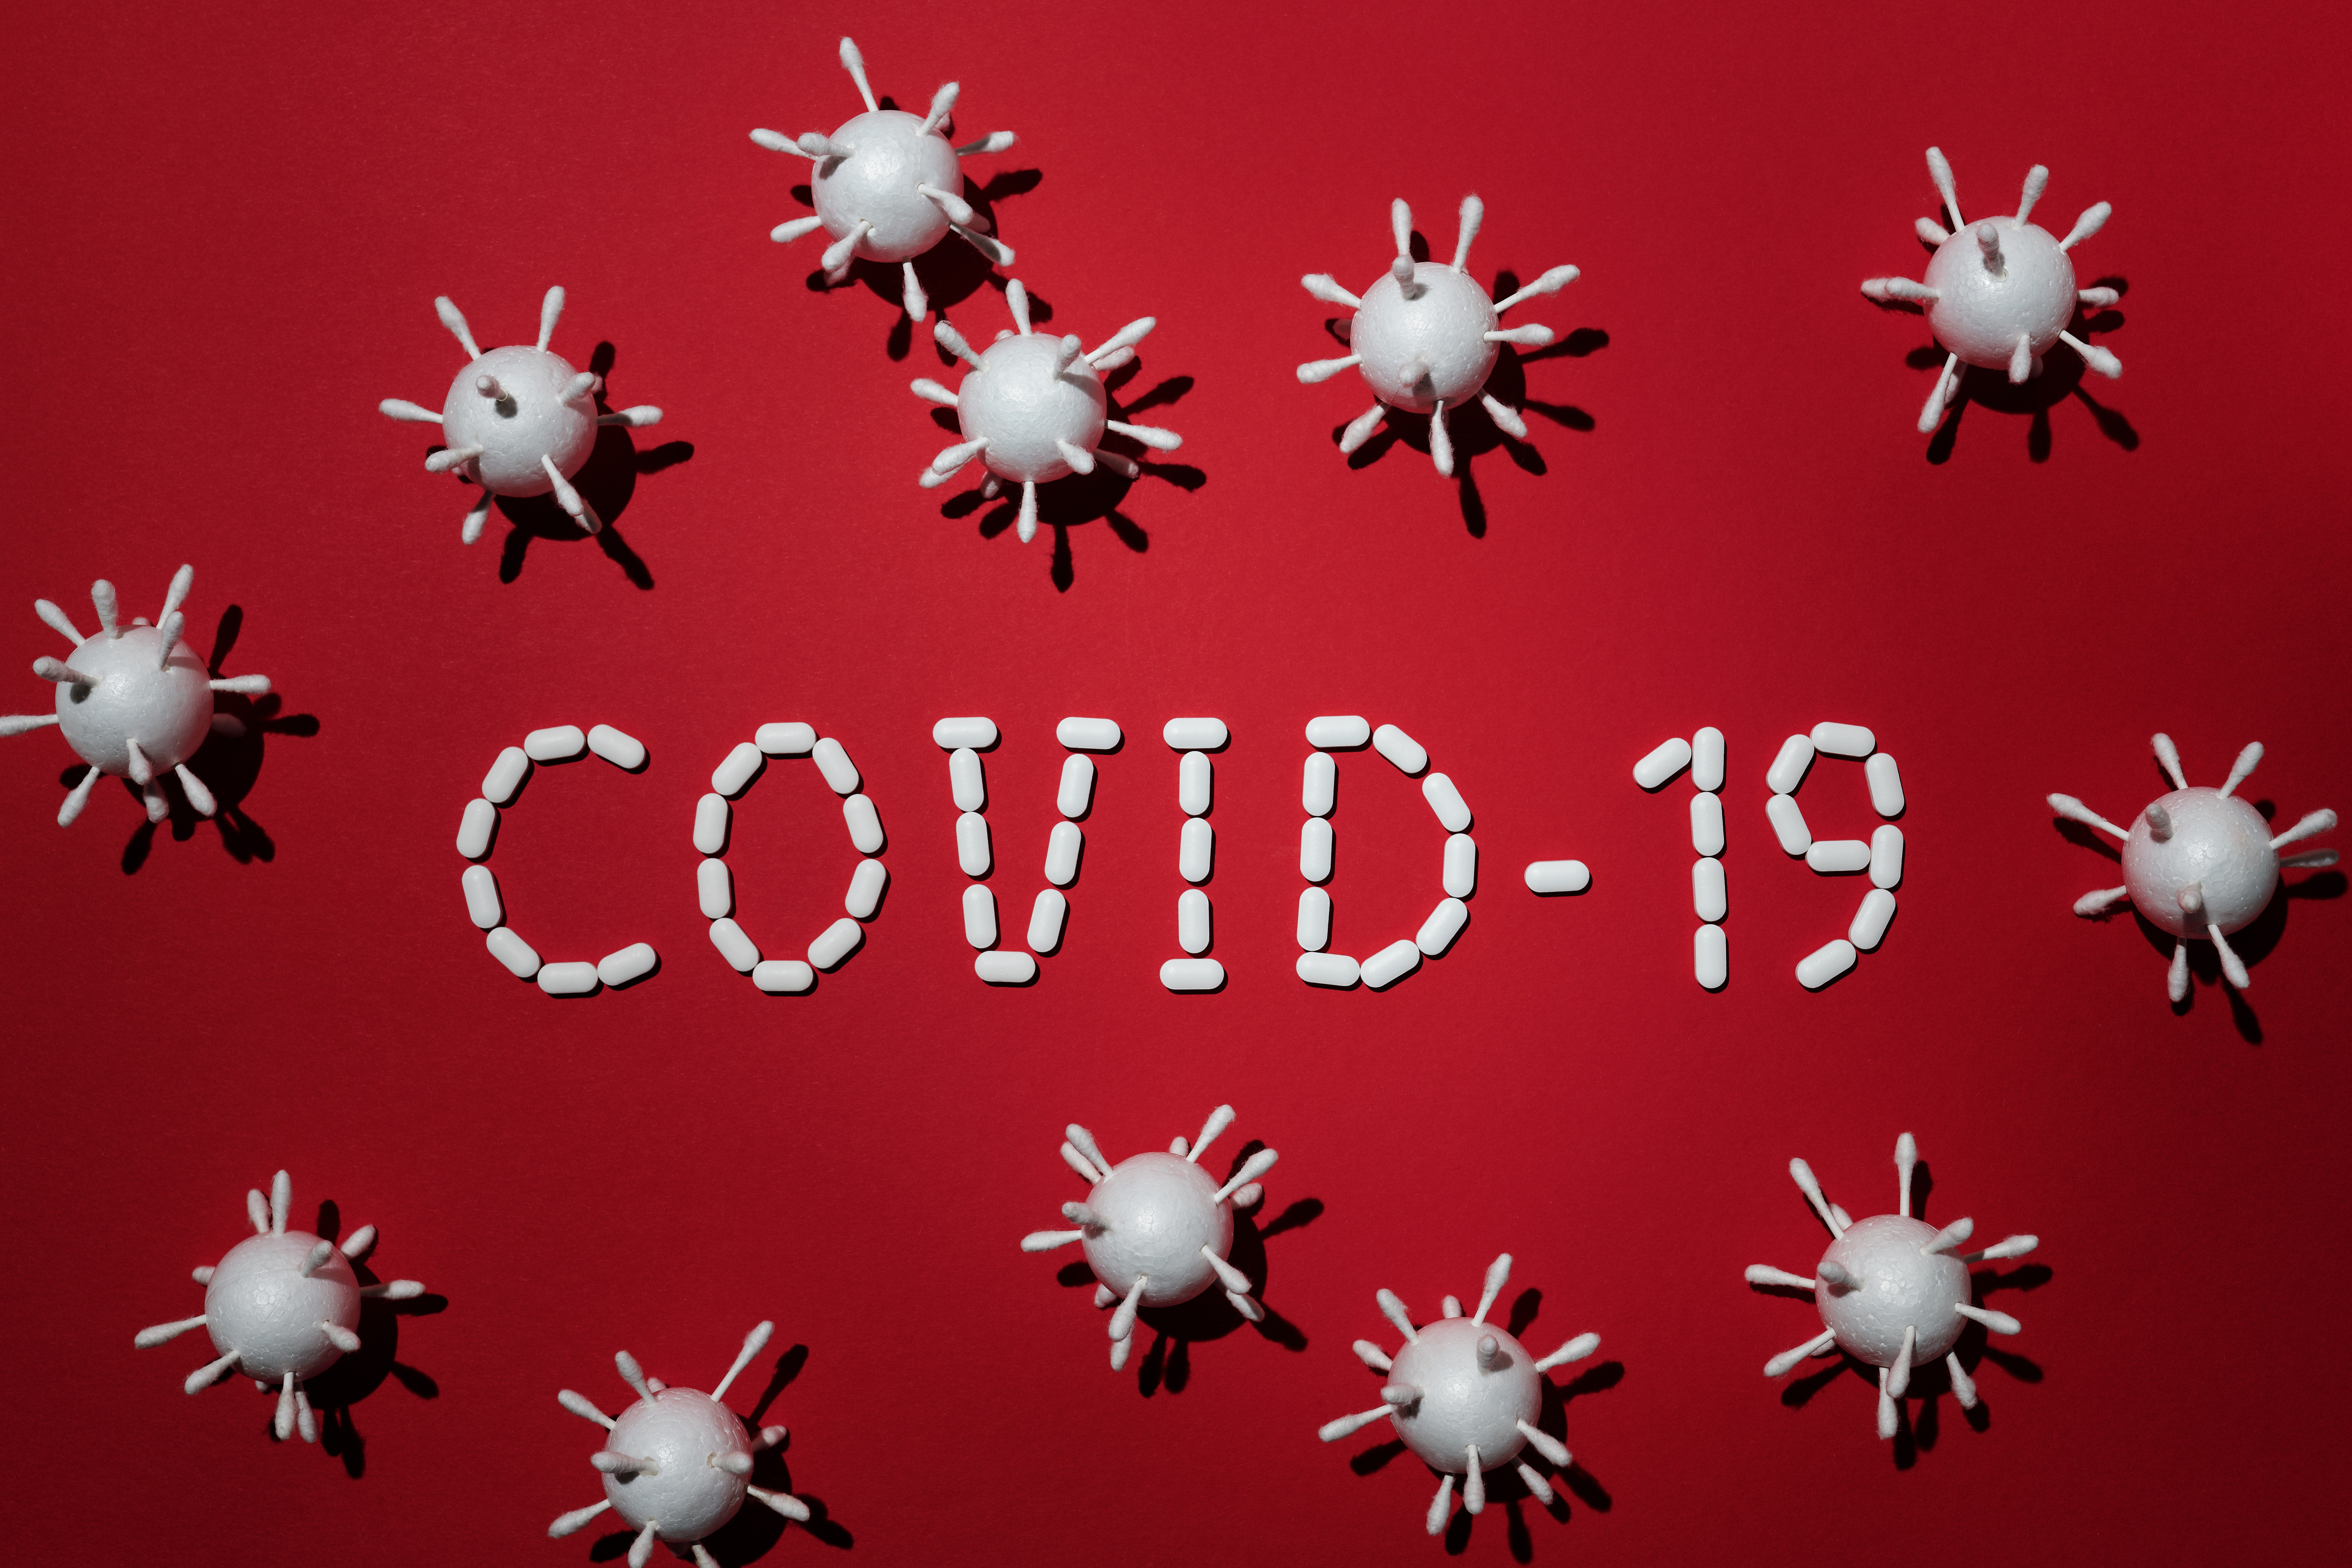 Long Covid: The Symptoms and Effects